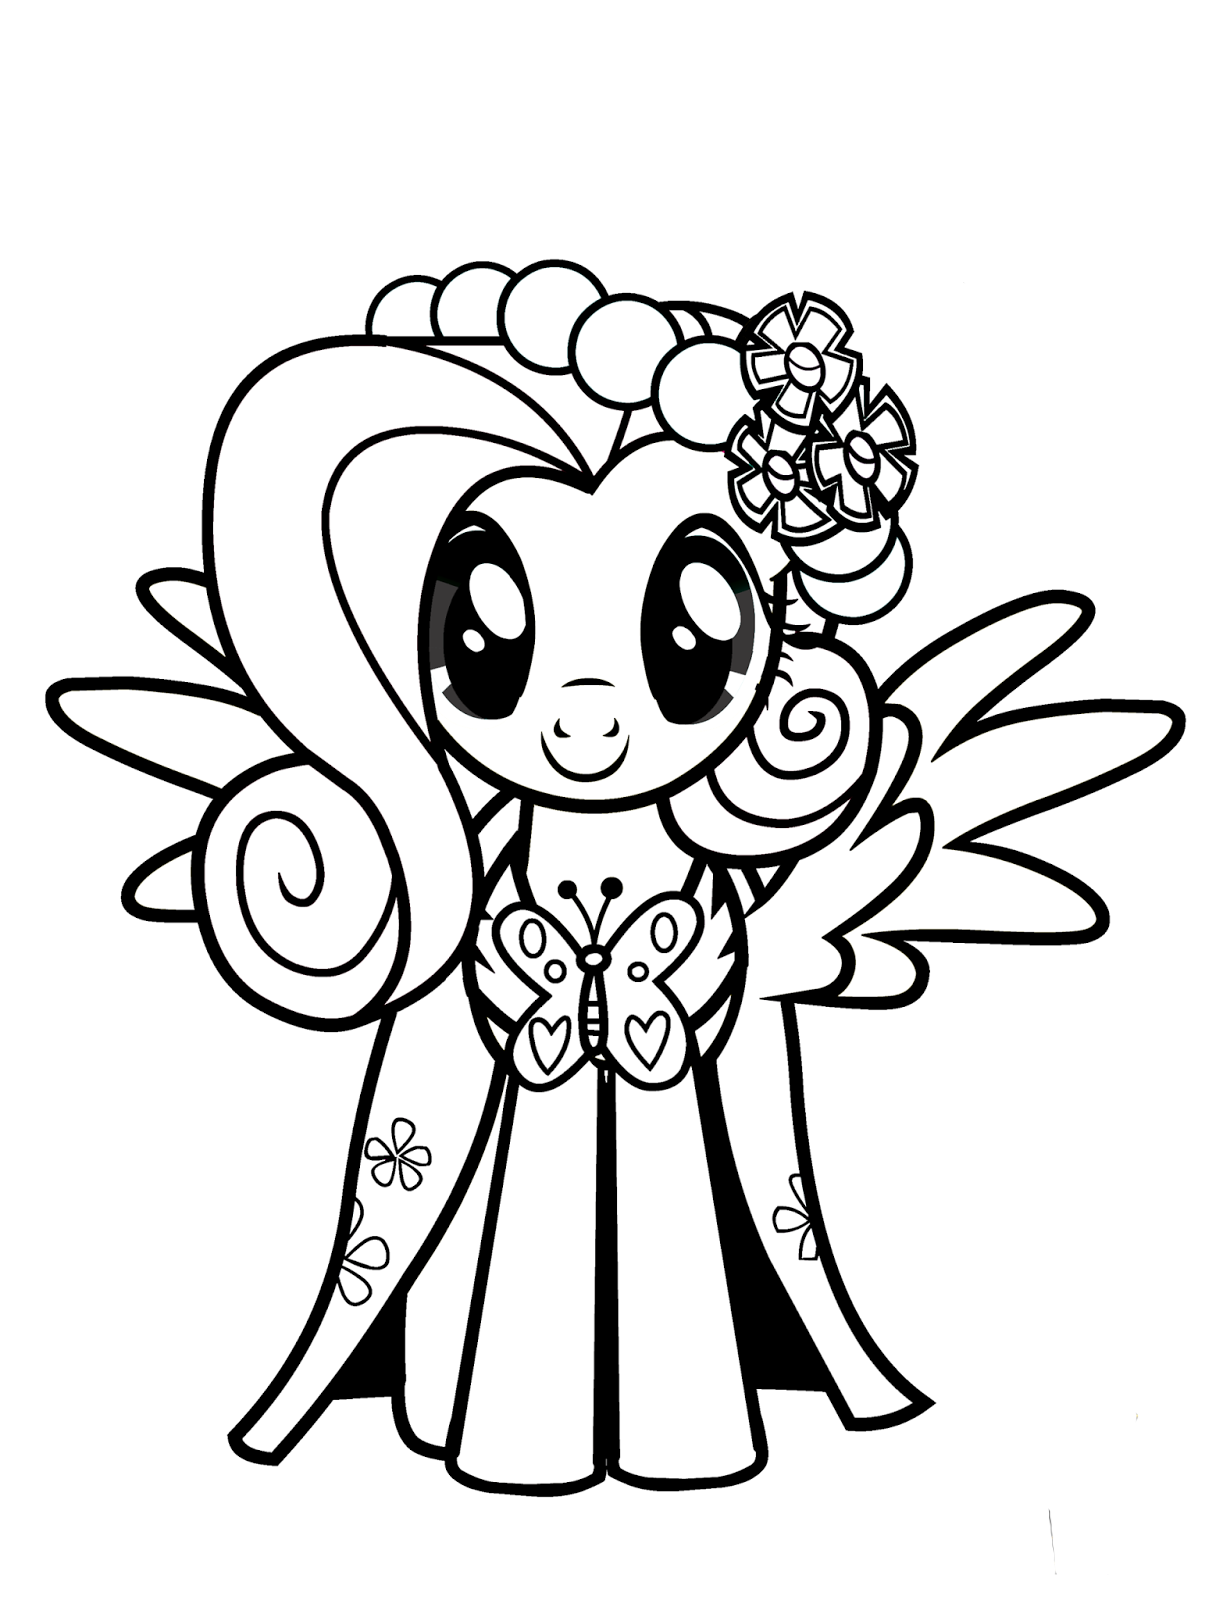 fluttershy coloring pages best coloring pages for kids. Black Bedroom Furniture Sets. Home Design Ideas